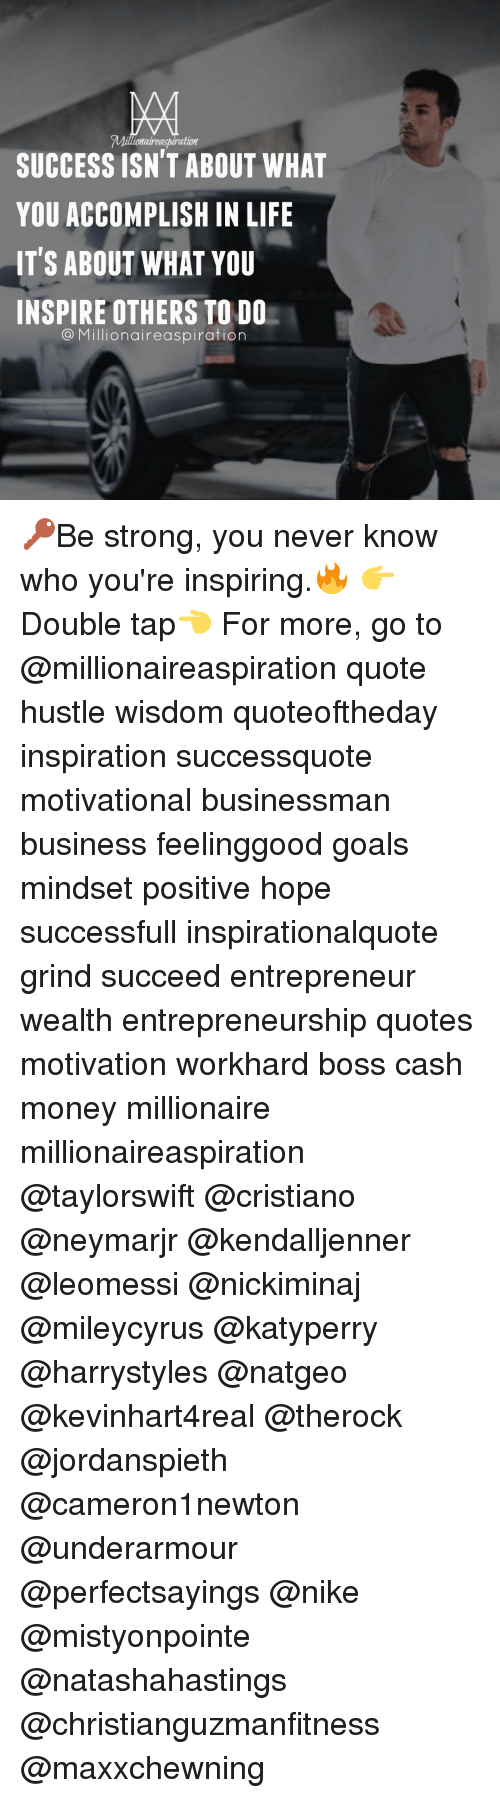 vam millionaireasairation success isnt about what you ac plish in life